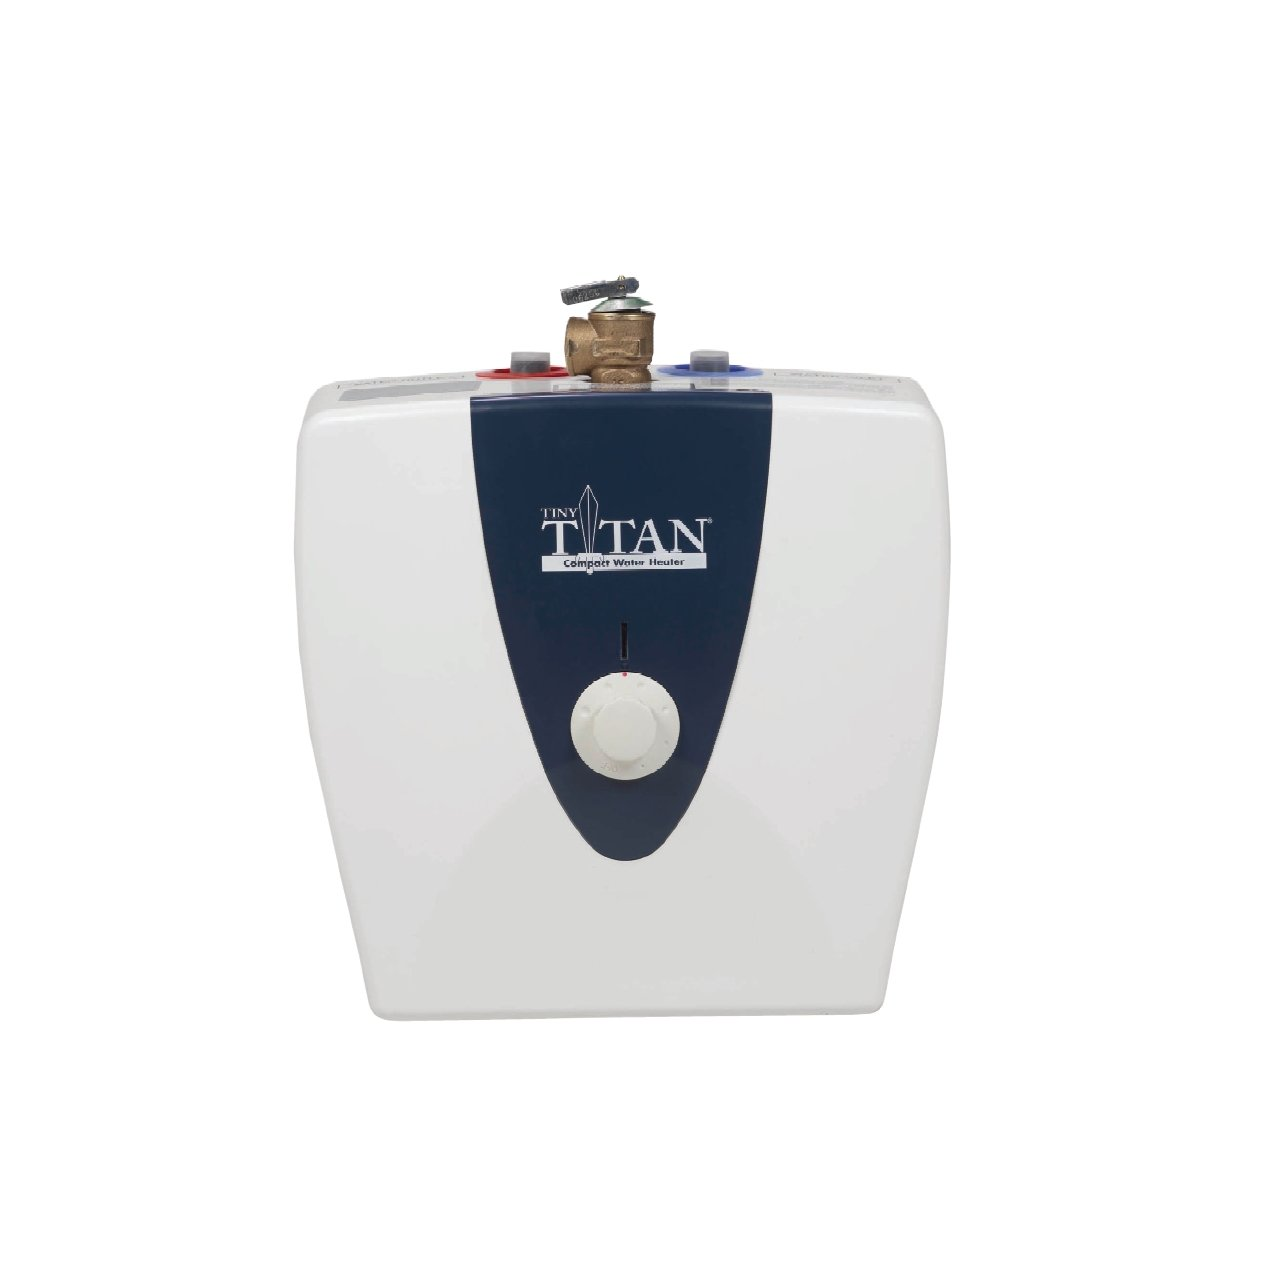 Electric Water Heater 40 Gallon American Water Heaters E1e25us015v Tiny Titan Electric Water